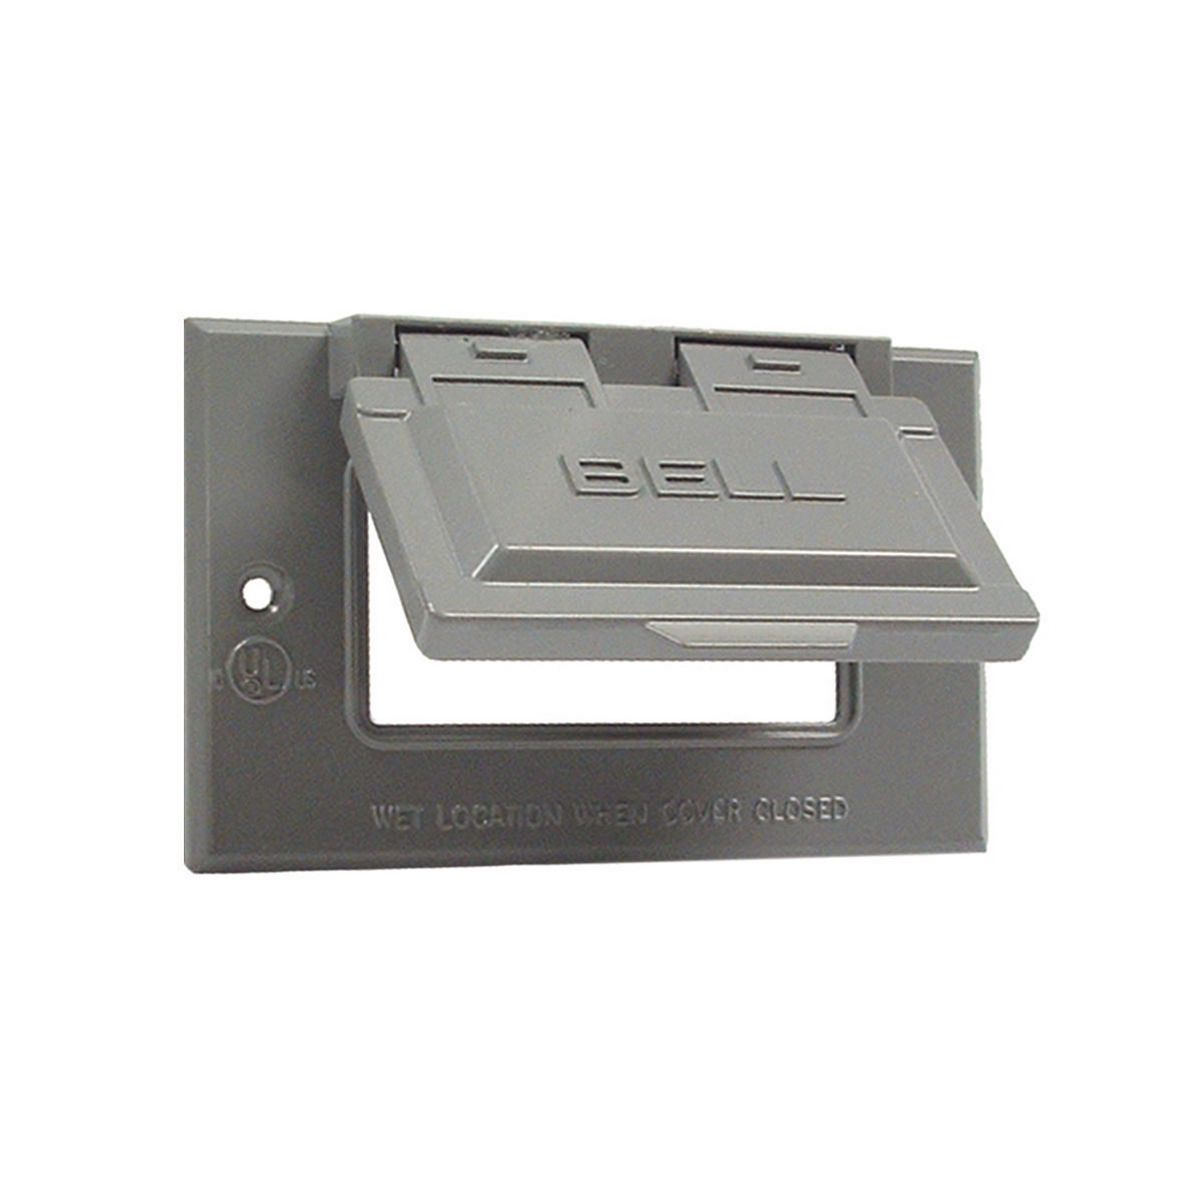 Hubbell-Raco 5101-0 BELL Rayntite Weatherproof Flip Cover